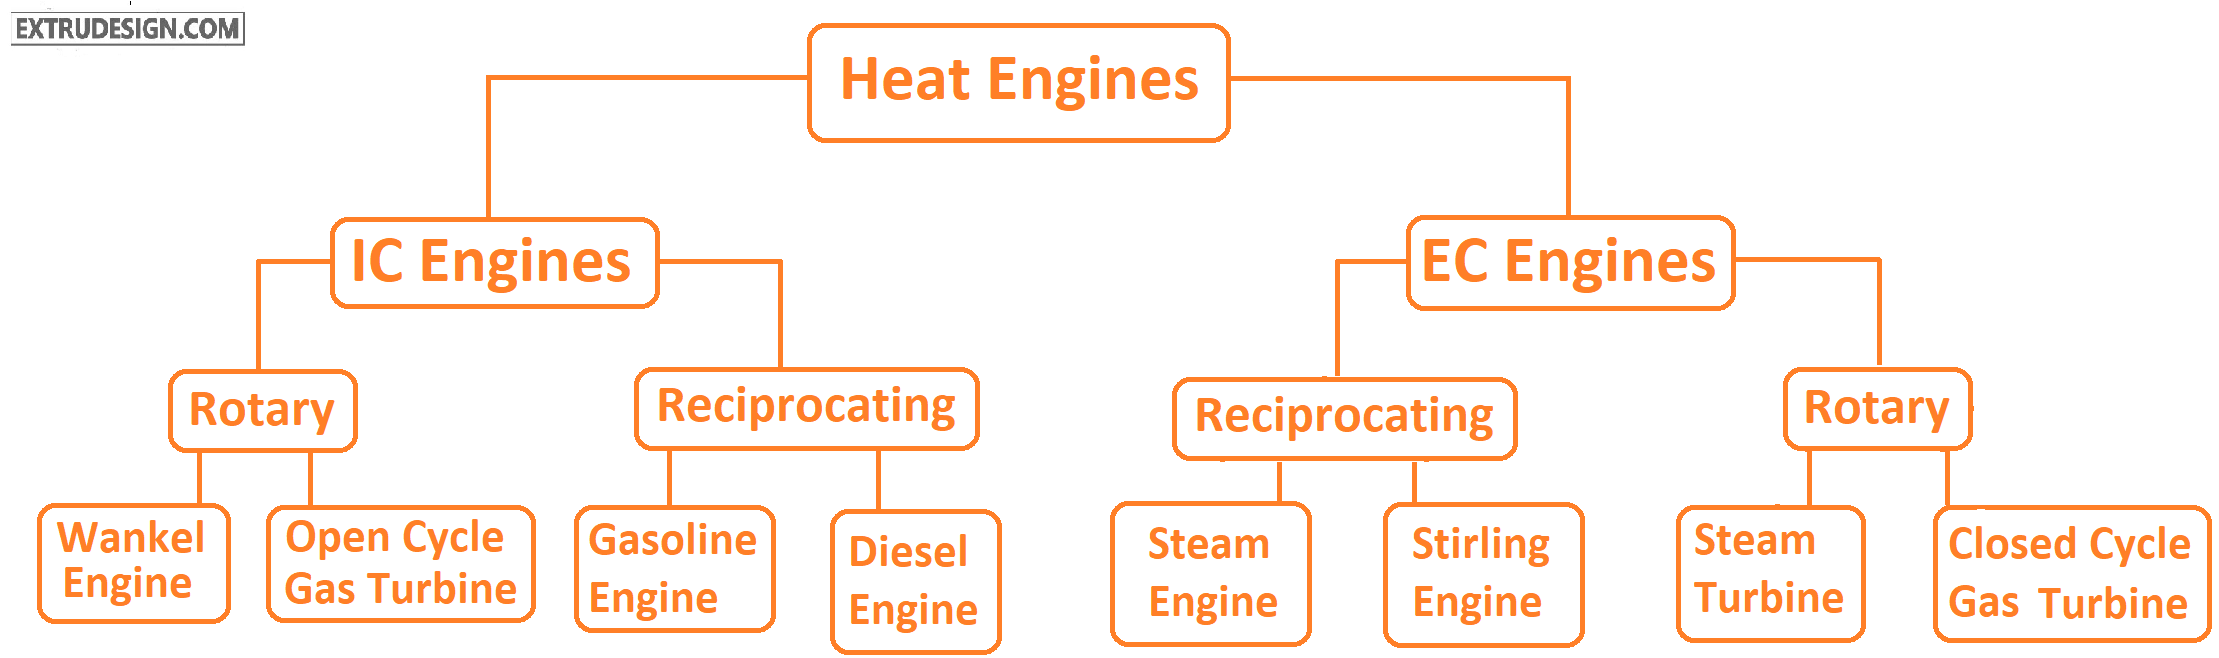 Heat Engines classification